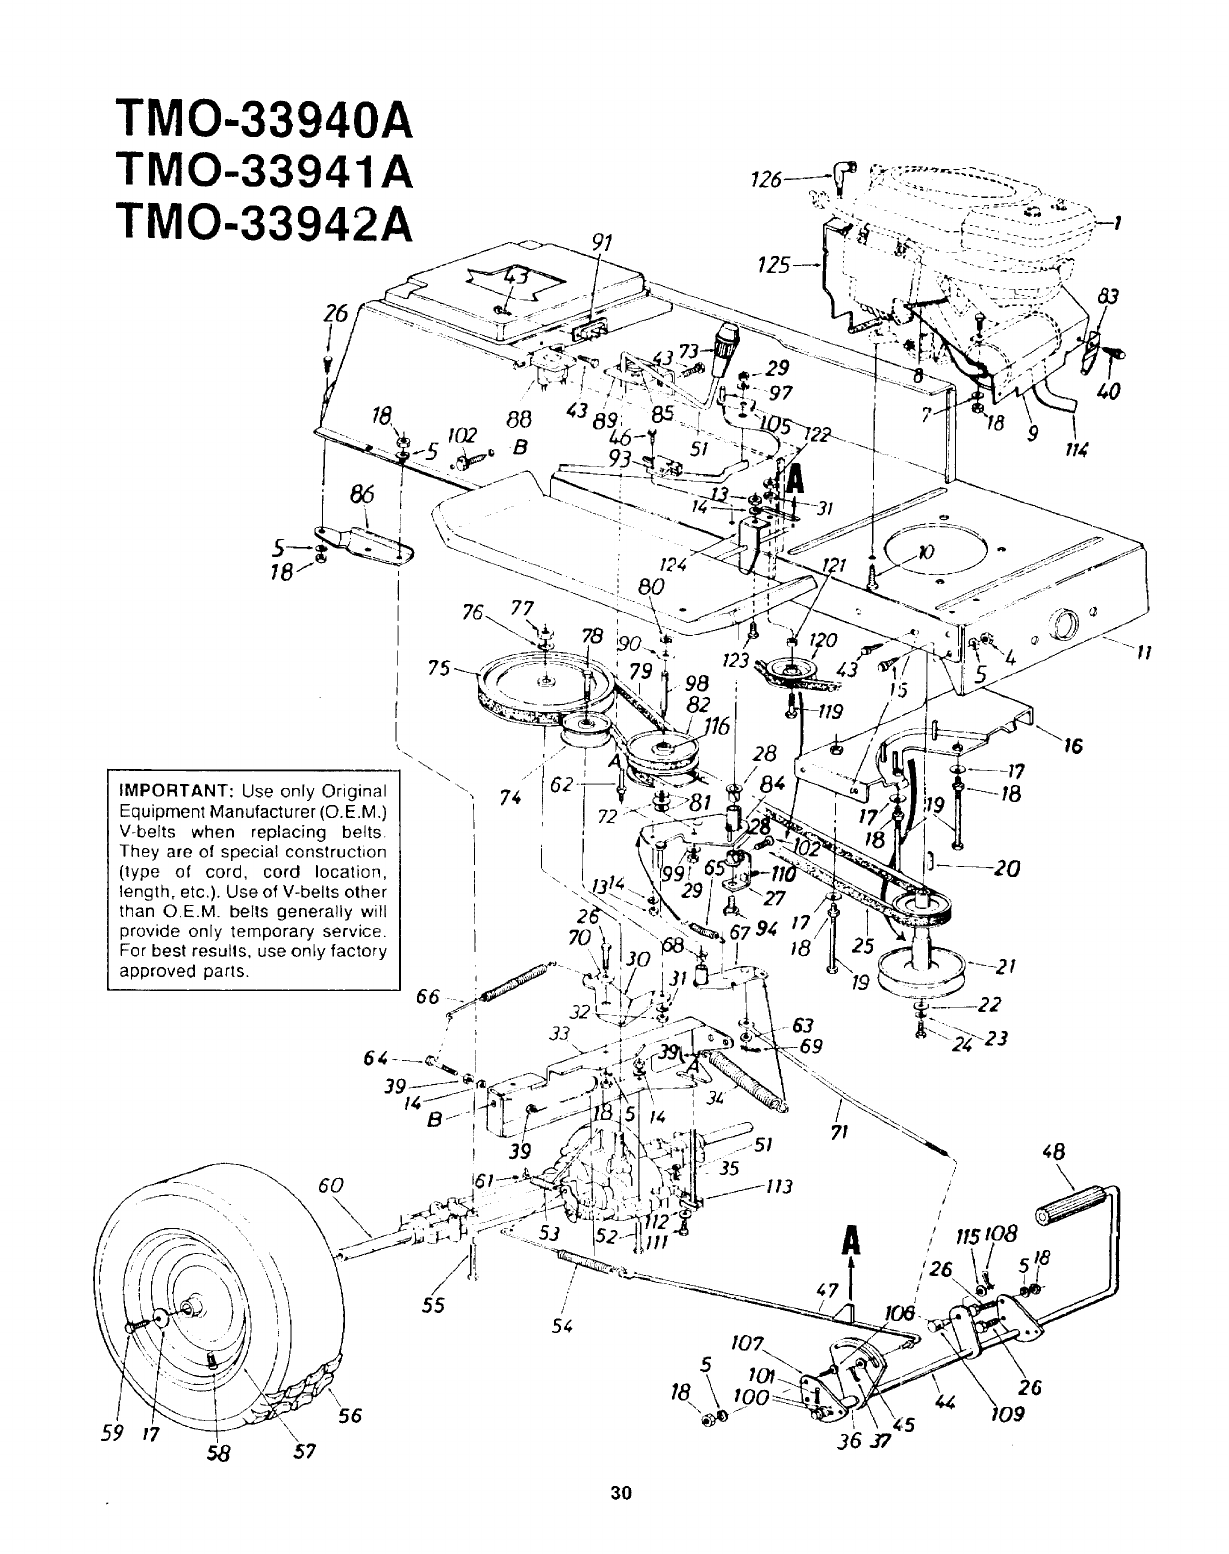 page 30 of montgomery ward lawn mower tmo